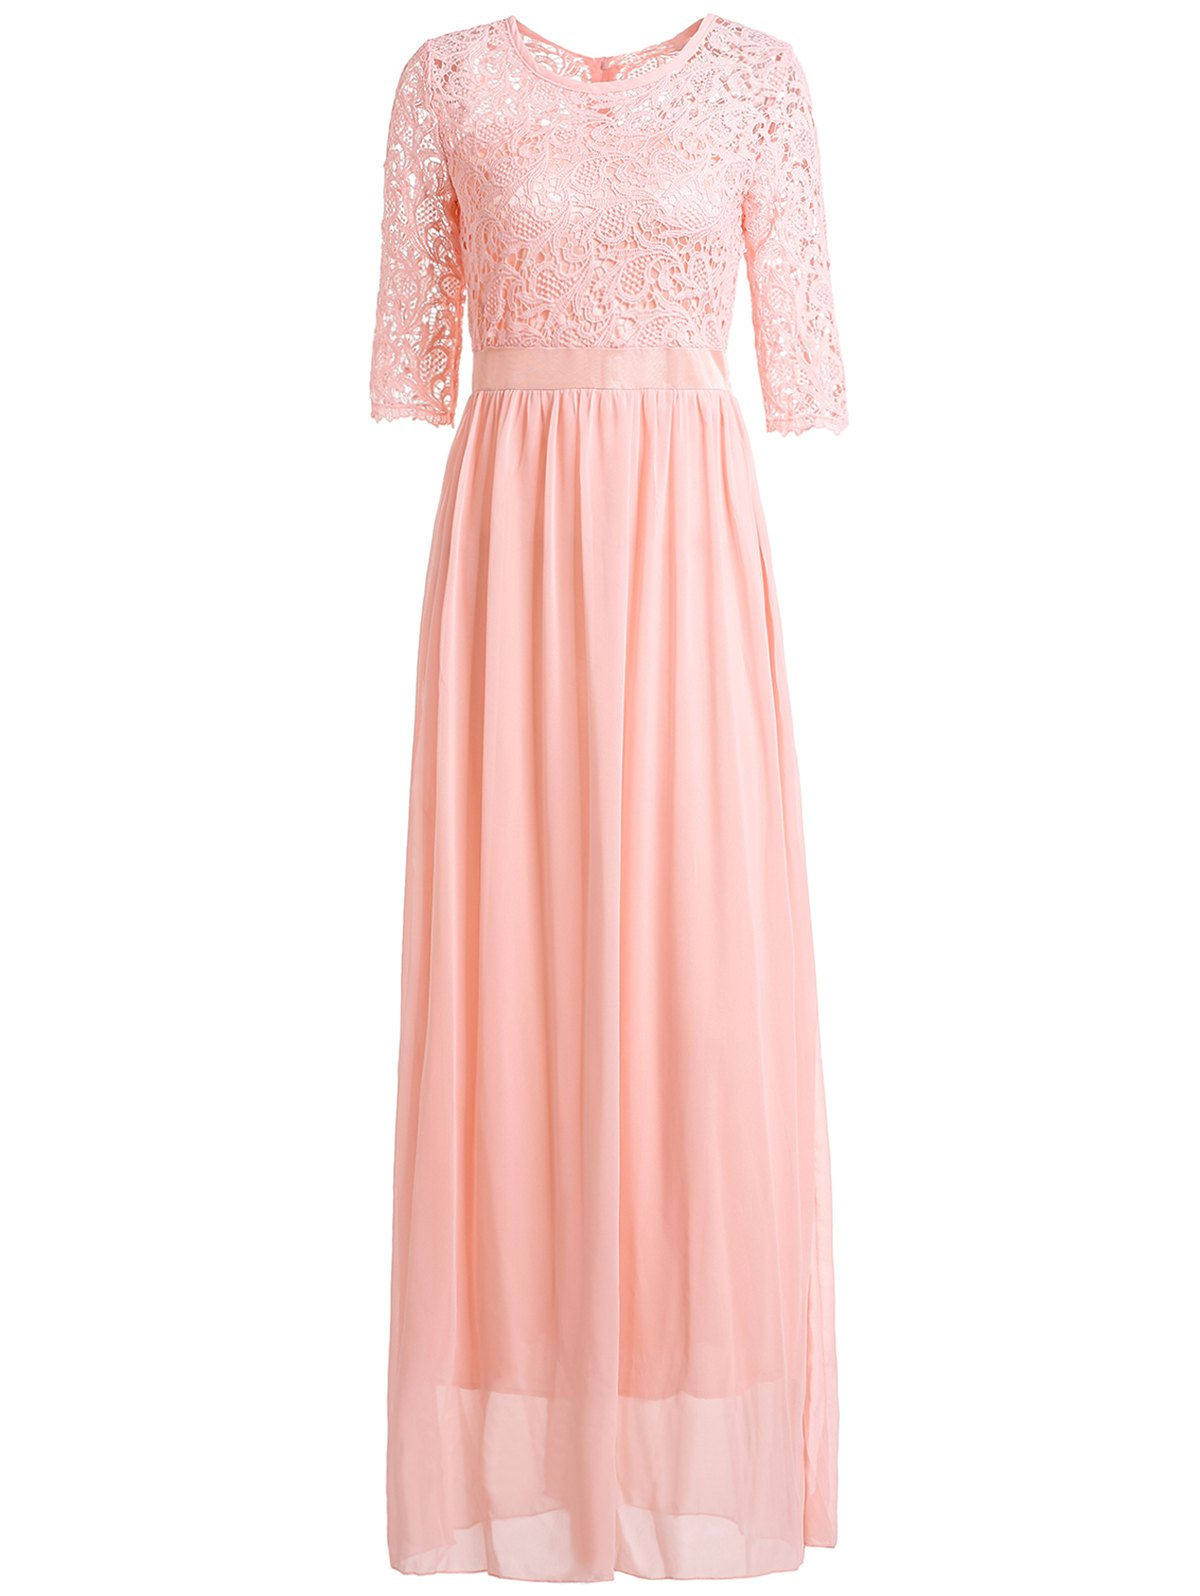 Chic 3/4 Sleeve Scoop Neck Cut Out Women's Maxi Dress - PINK L